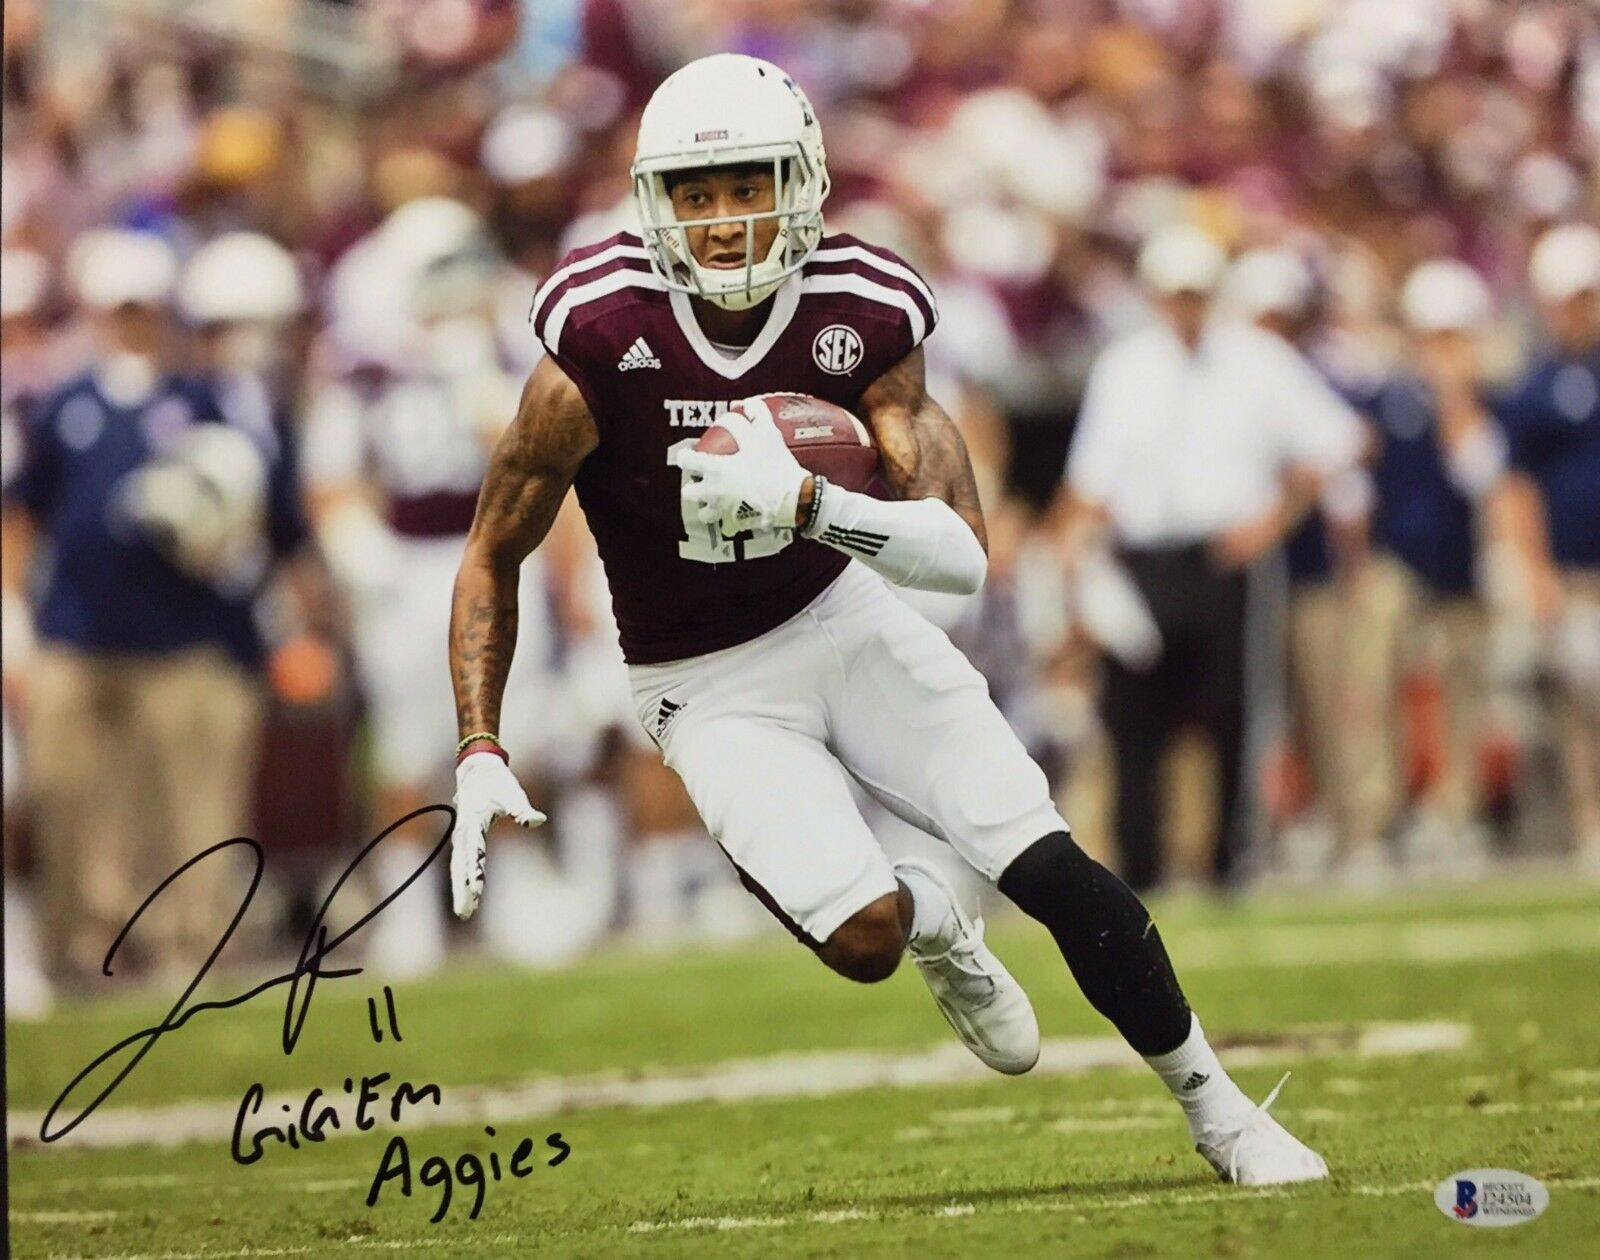 Josh Reynolds Signed Texas A&M Football 11x14 Photo